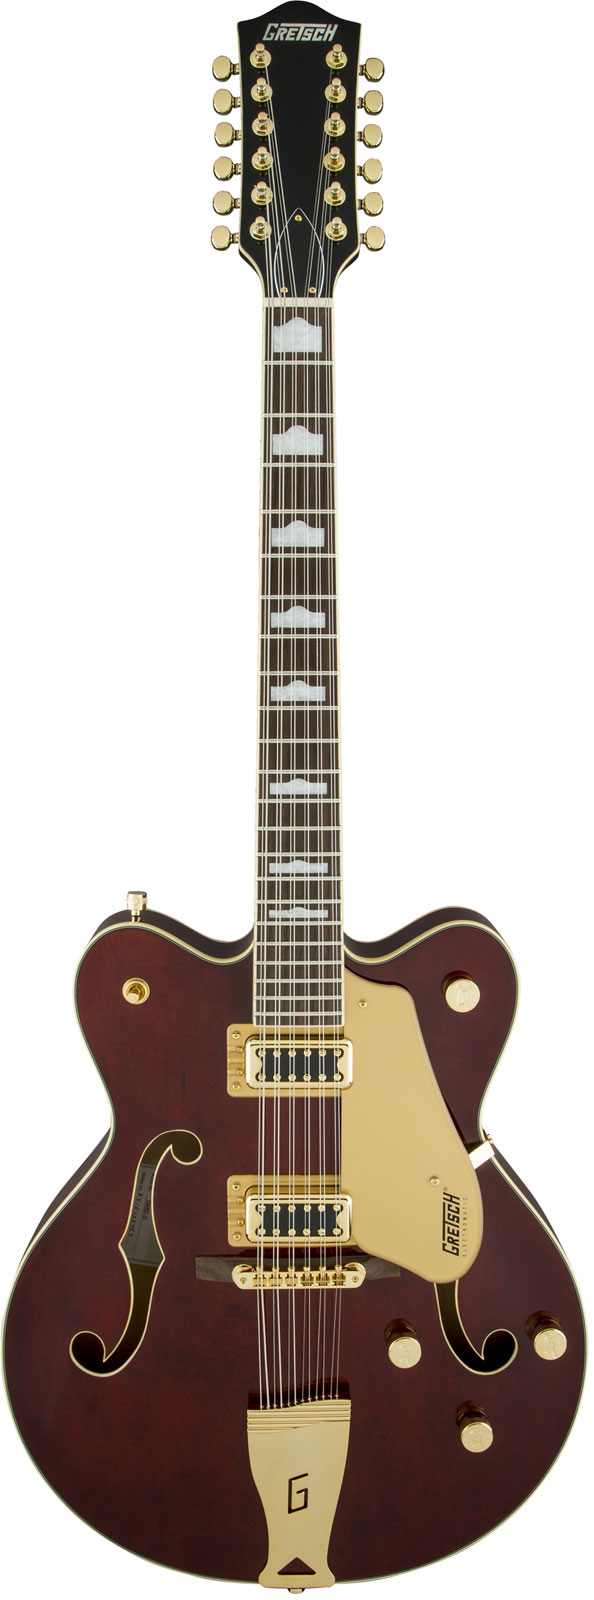 Gretsch G5422g-12 2016 Electromatic 12 Walnut Stain